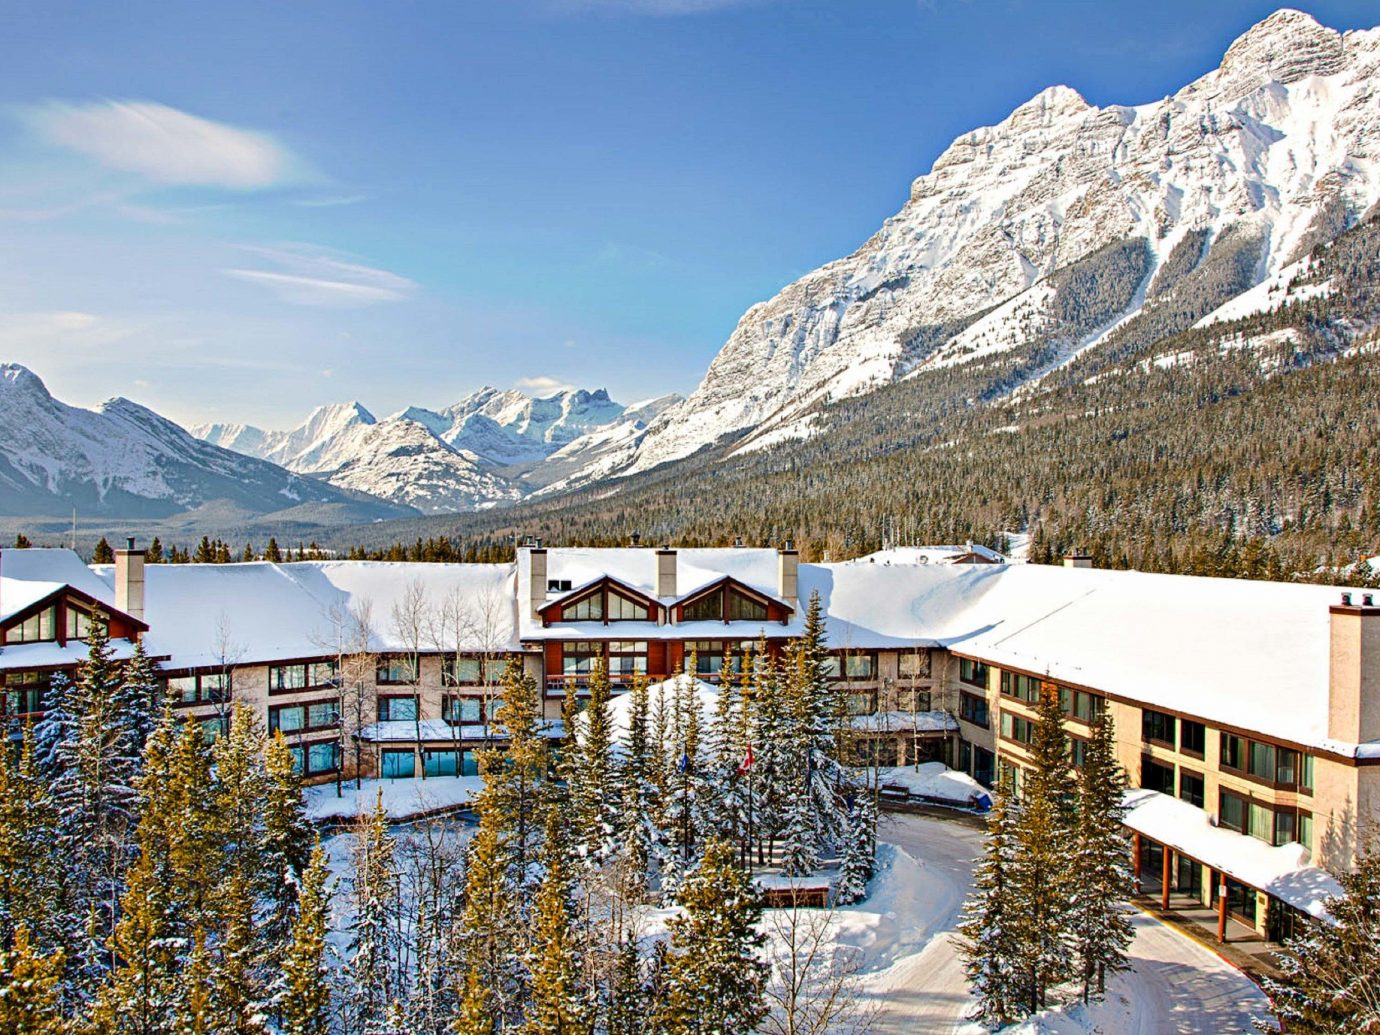 Alberta Boutique Hotels Canada Hotels Road Trips Winter mountain range mountainous landforms mountain snow sky alps tourist attraction real estate glacial landform reflection mount scenery tourism elevation tree vacation Lake roof landscape